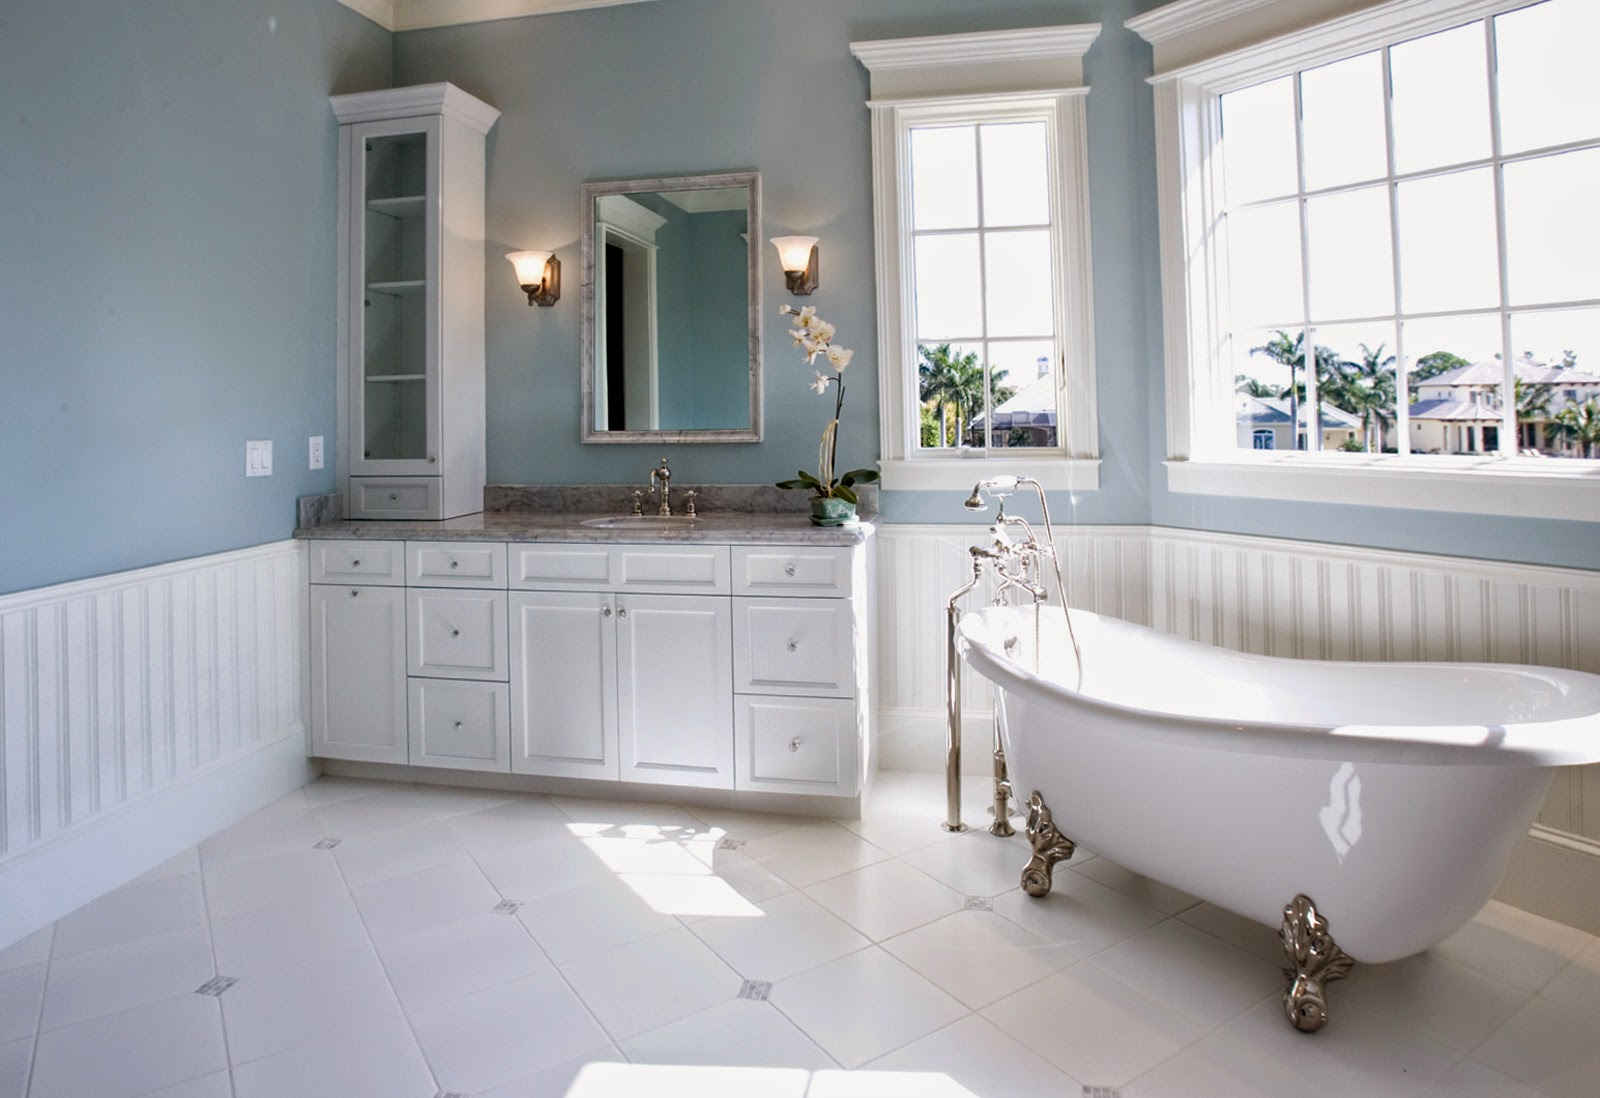 Top 10 beautiful bathroom design 2014 home interior blog for Pictures of beautiful bathroom designs